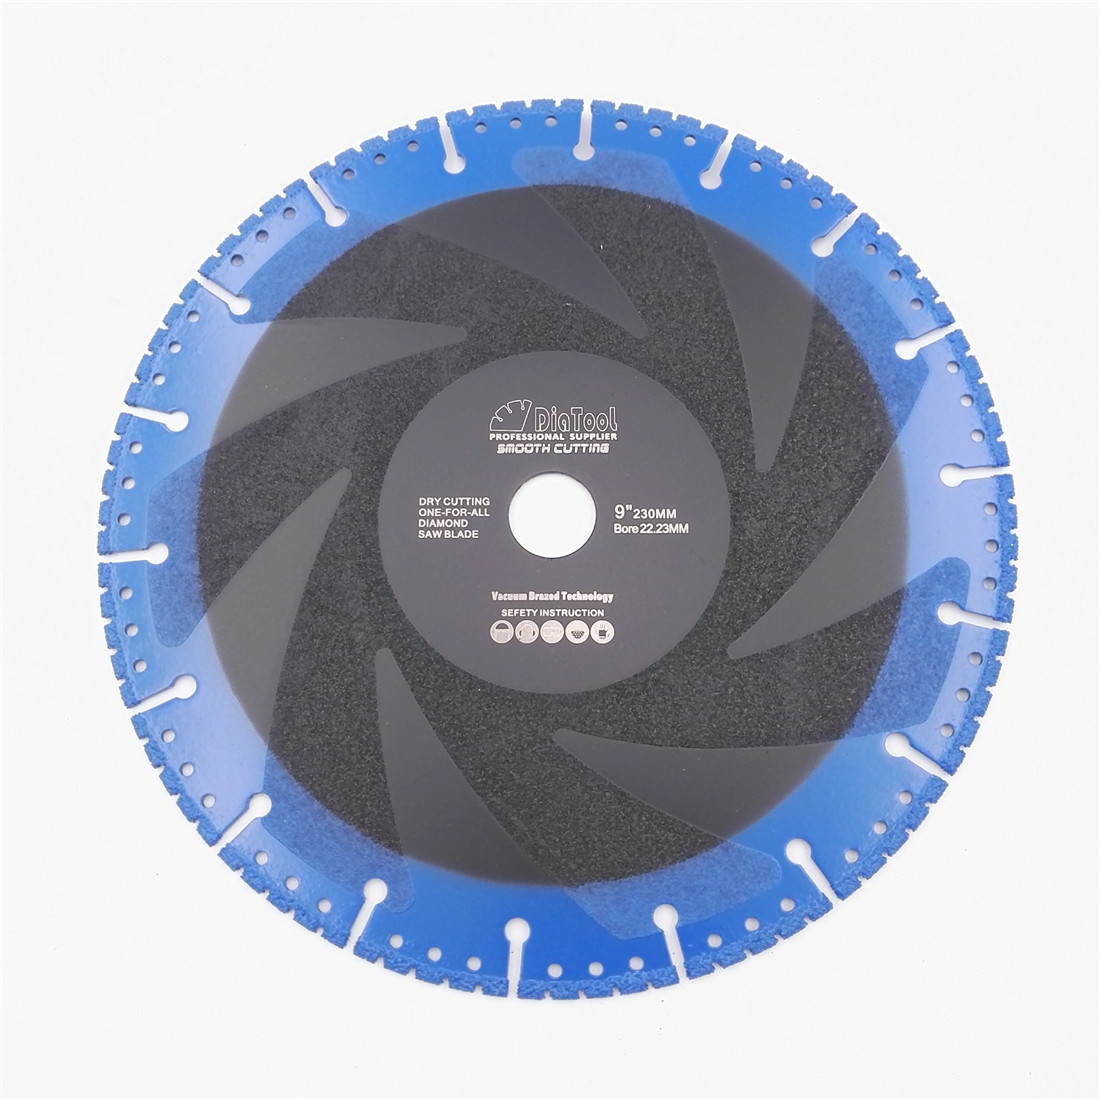 DIATOOL 1pc 230mm Vacuum Brazed Diamond Blade For All Purpose For Stone Iron Steel 9 Demolition Blade diatool 2pcs 230mm vacuum brazed diamond demolition blade body coated better performance cutting disc for multi purpose